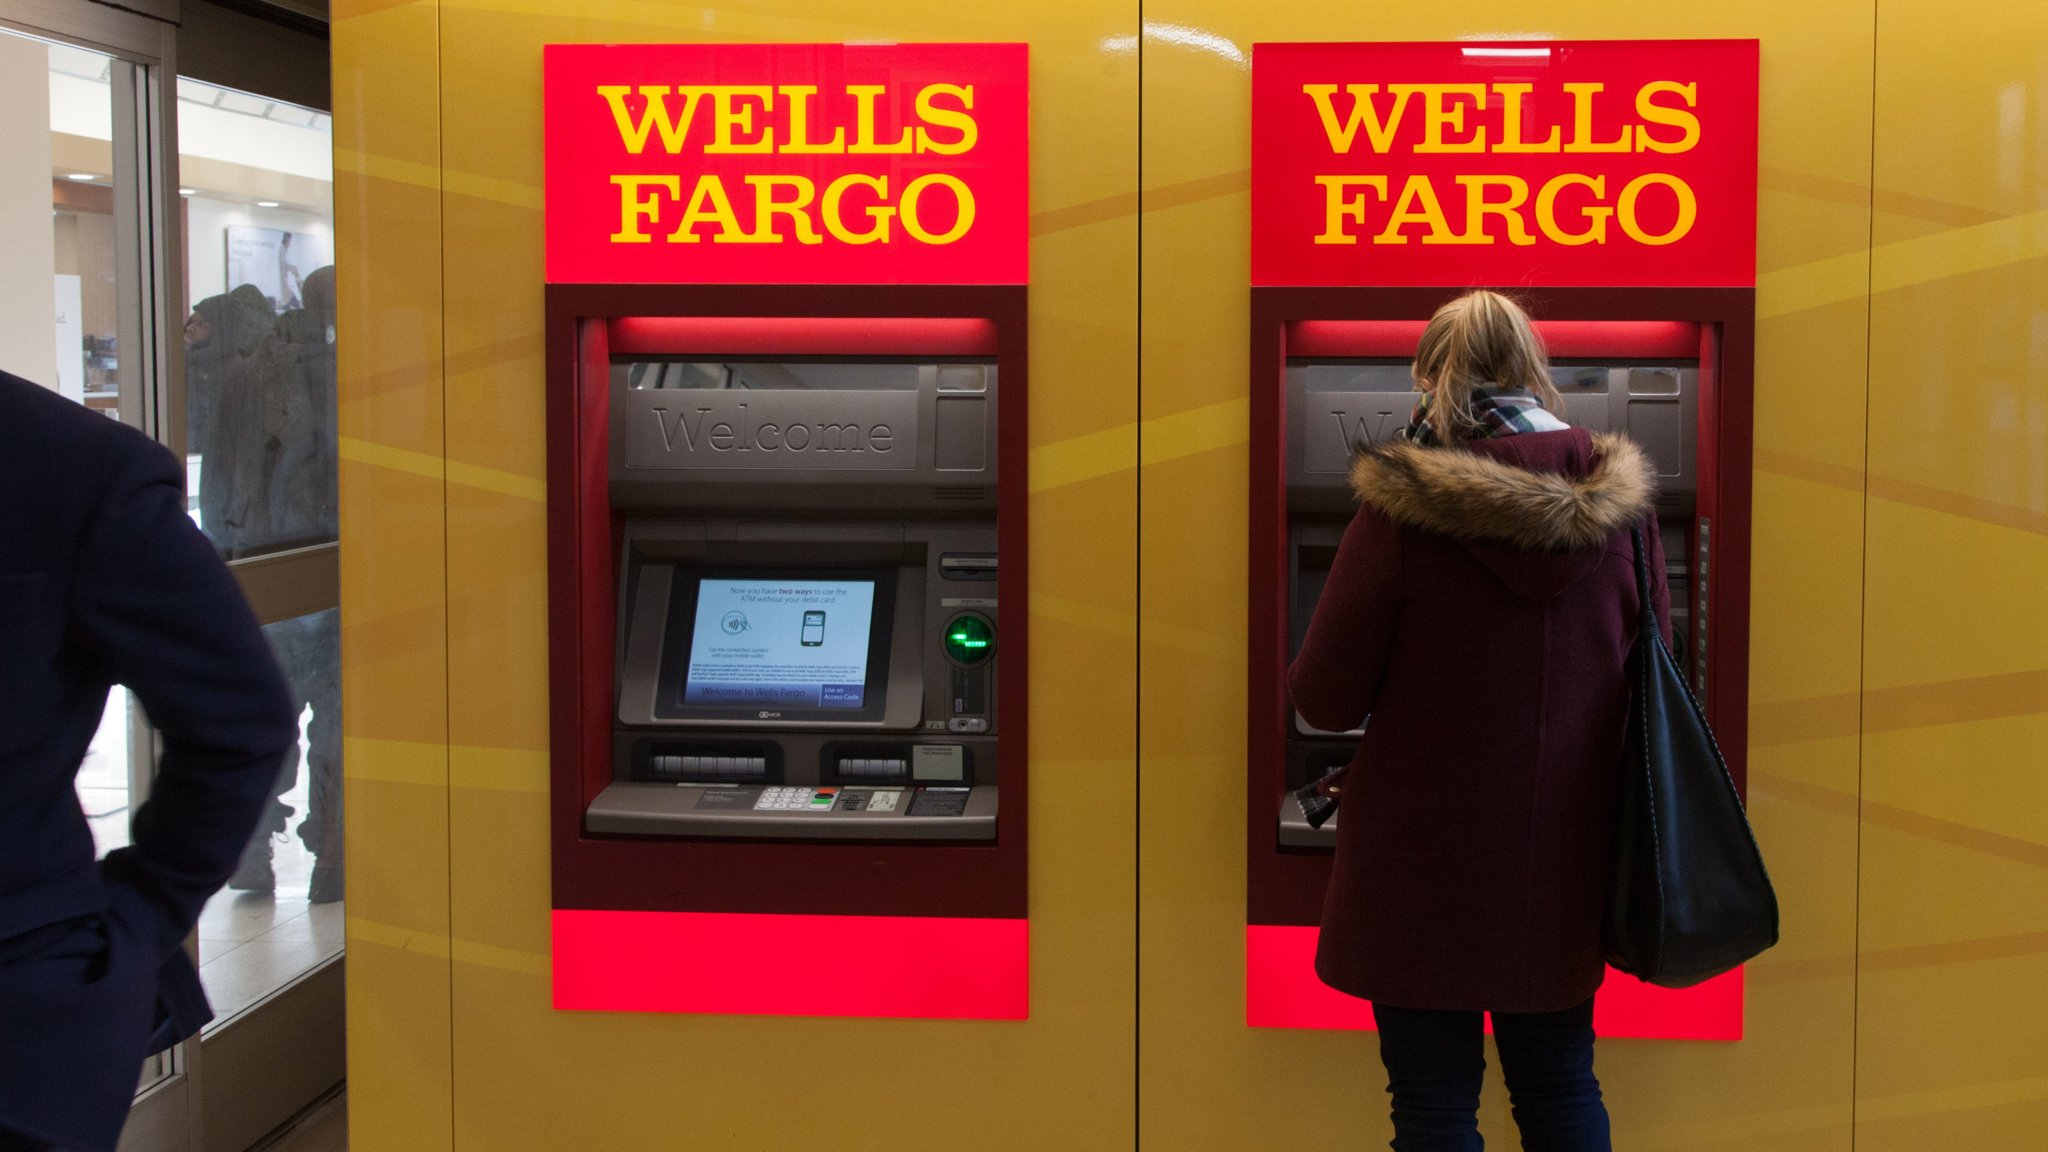 Irish central bank fines Wells Fargo €5 9m for 'serious